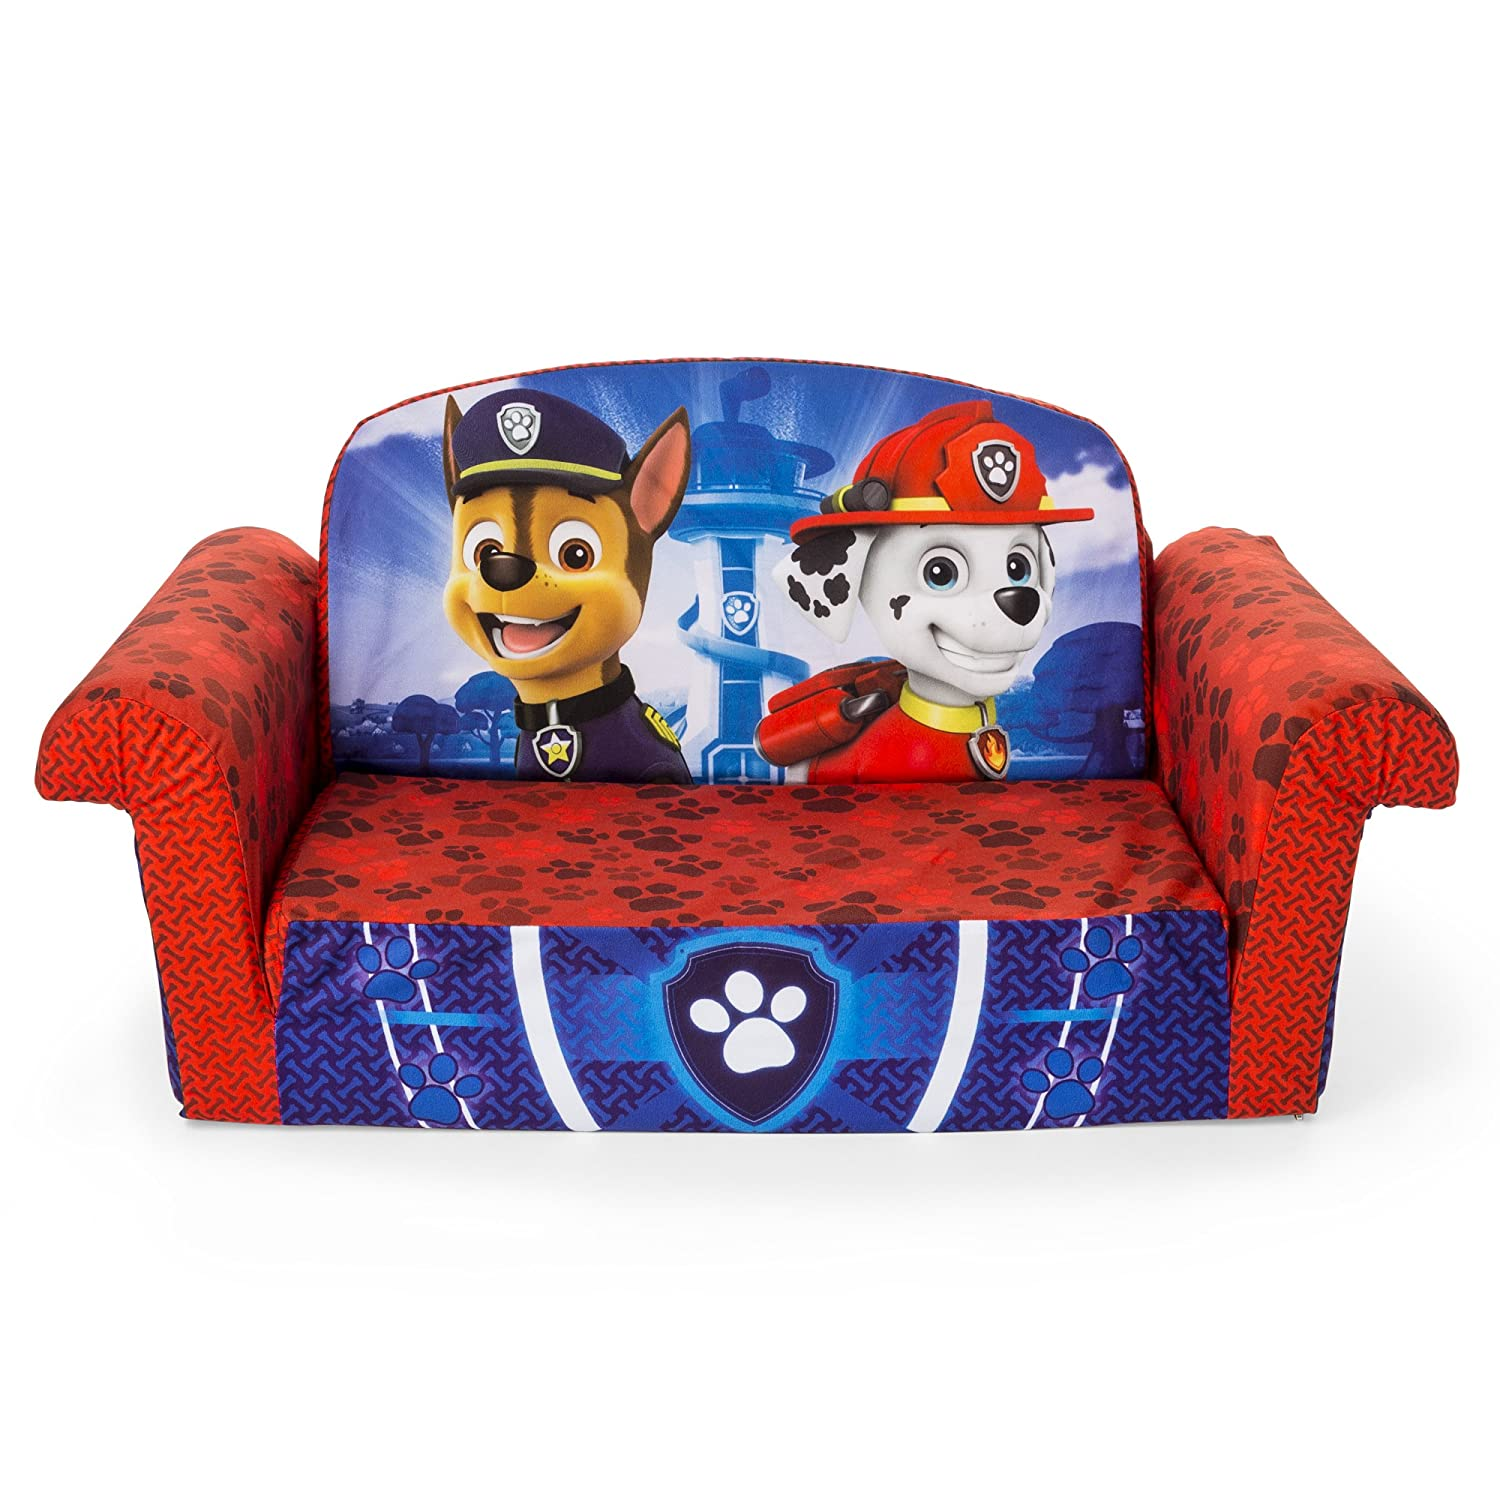 Couch For Kids Toddler Sofa Chair 2 In 1 Flip Open Foam Bright Rh Ebay Com Flip  Sofa Chair Bed Flip Sofa Chair Bed